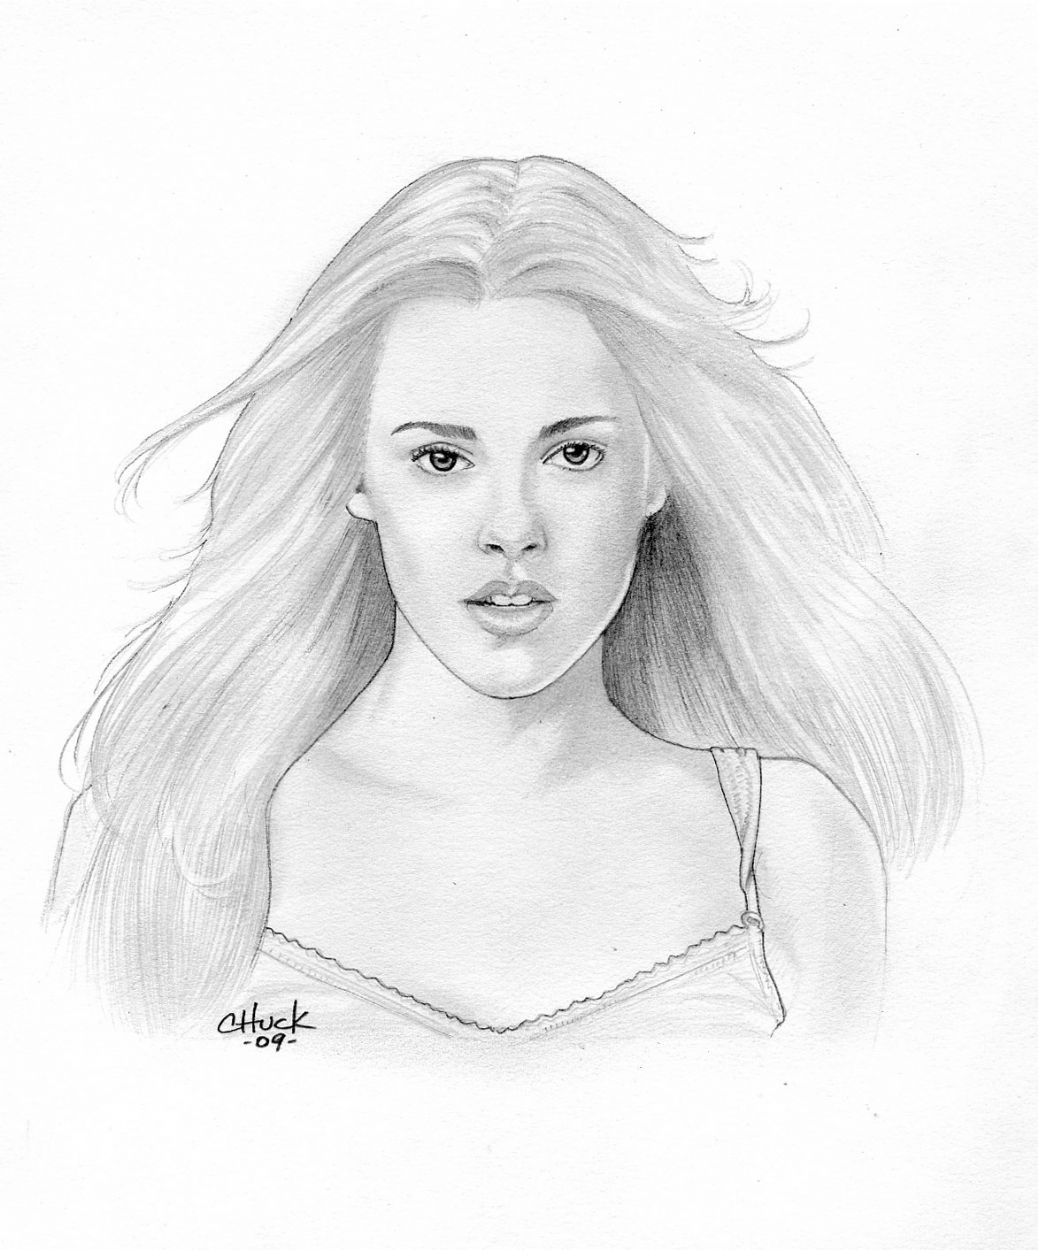 Twilight Coloring Pages Twilight Bella Swan Commission In Chuck Womack S Twilight Comic Art Swans Art Art Comic Art